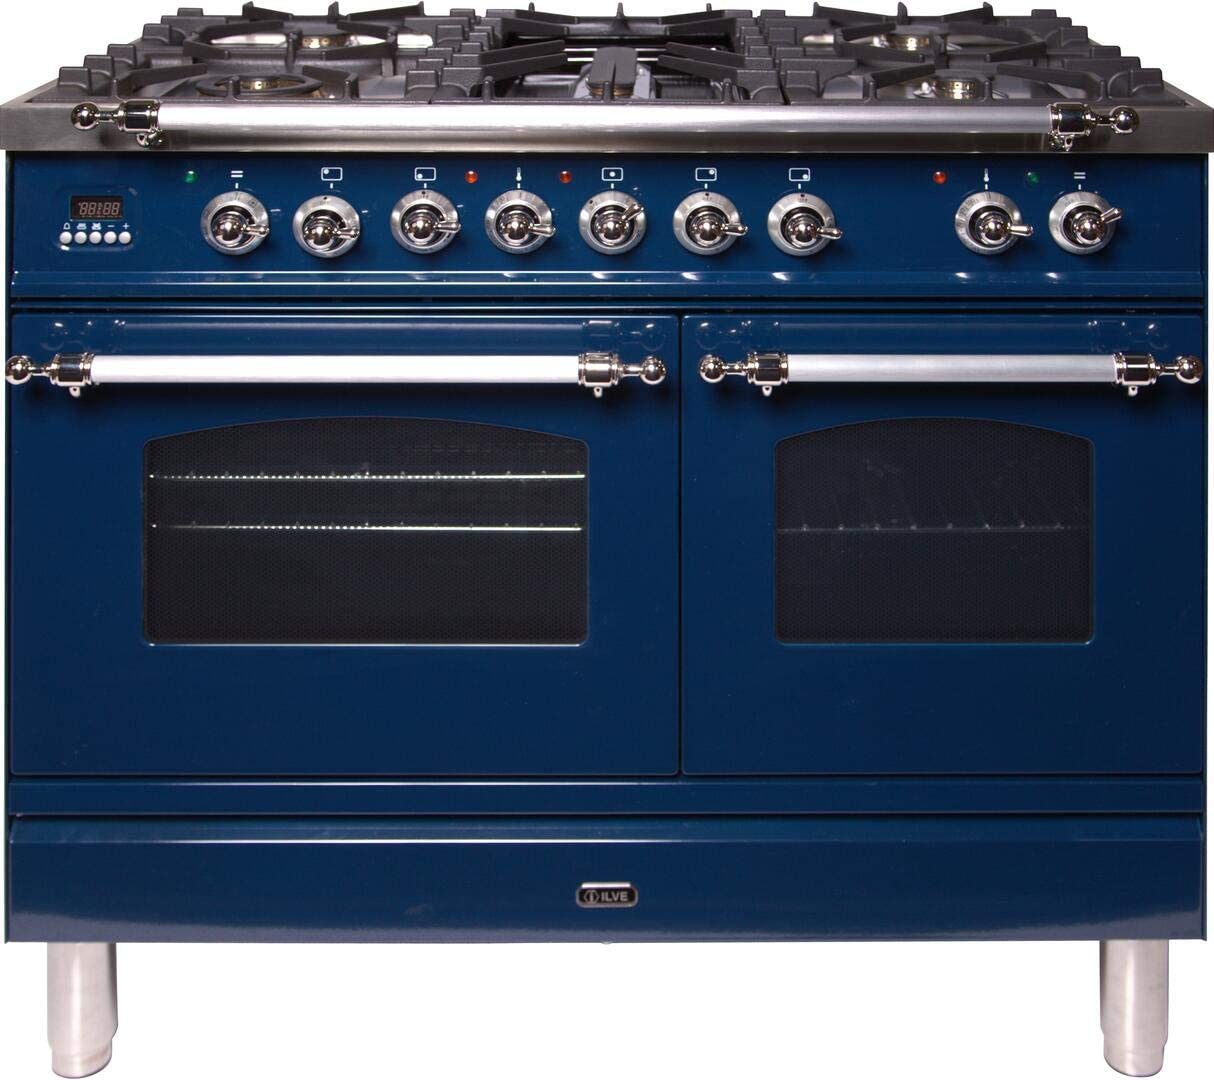 Ilve UPDN100FDMPBLXLP 40 Nostalgie Series Dual Fuel Liquid Propane Range with 5 Sealed Brass Burners 3.55 cu. ft. Total Capacity True Convection Oven Griddle with Chrome Trim in Blue